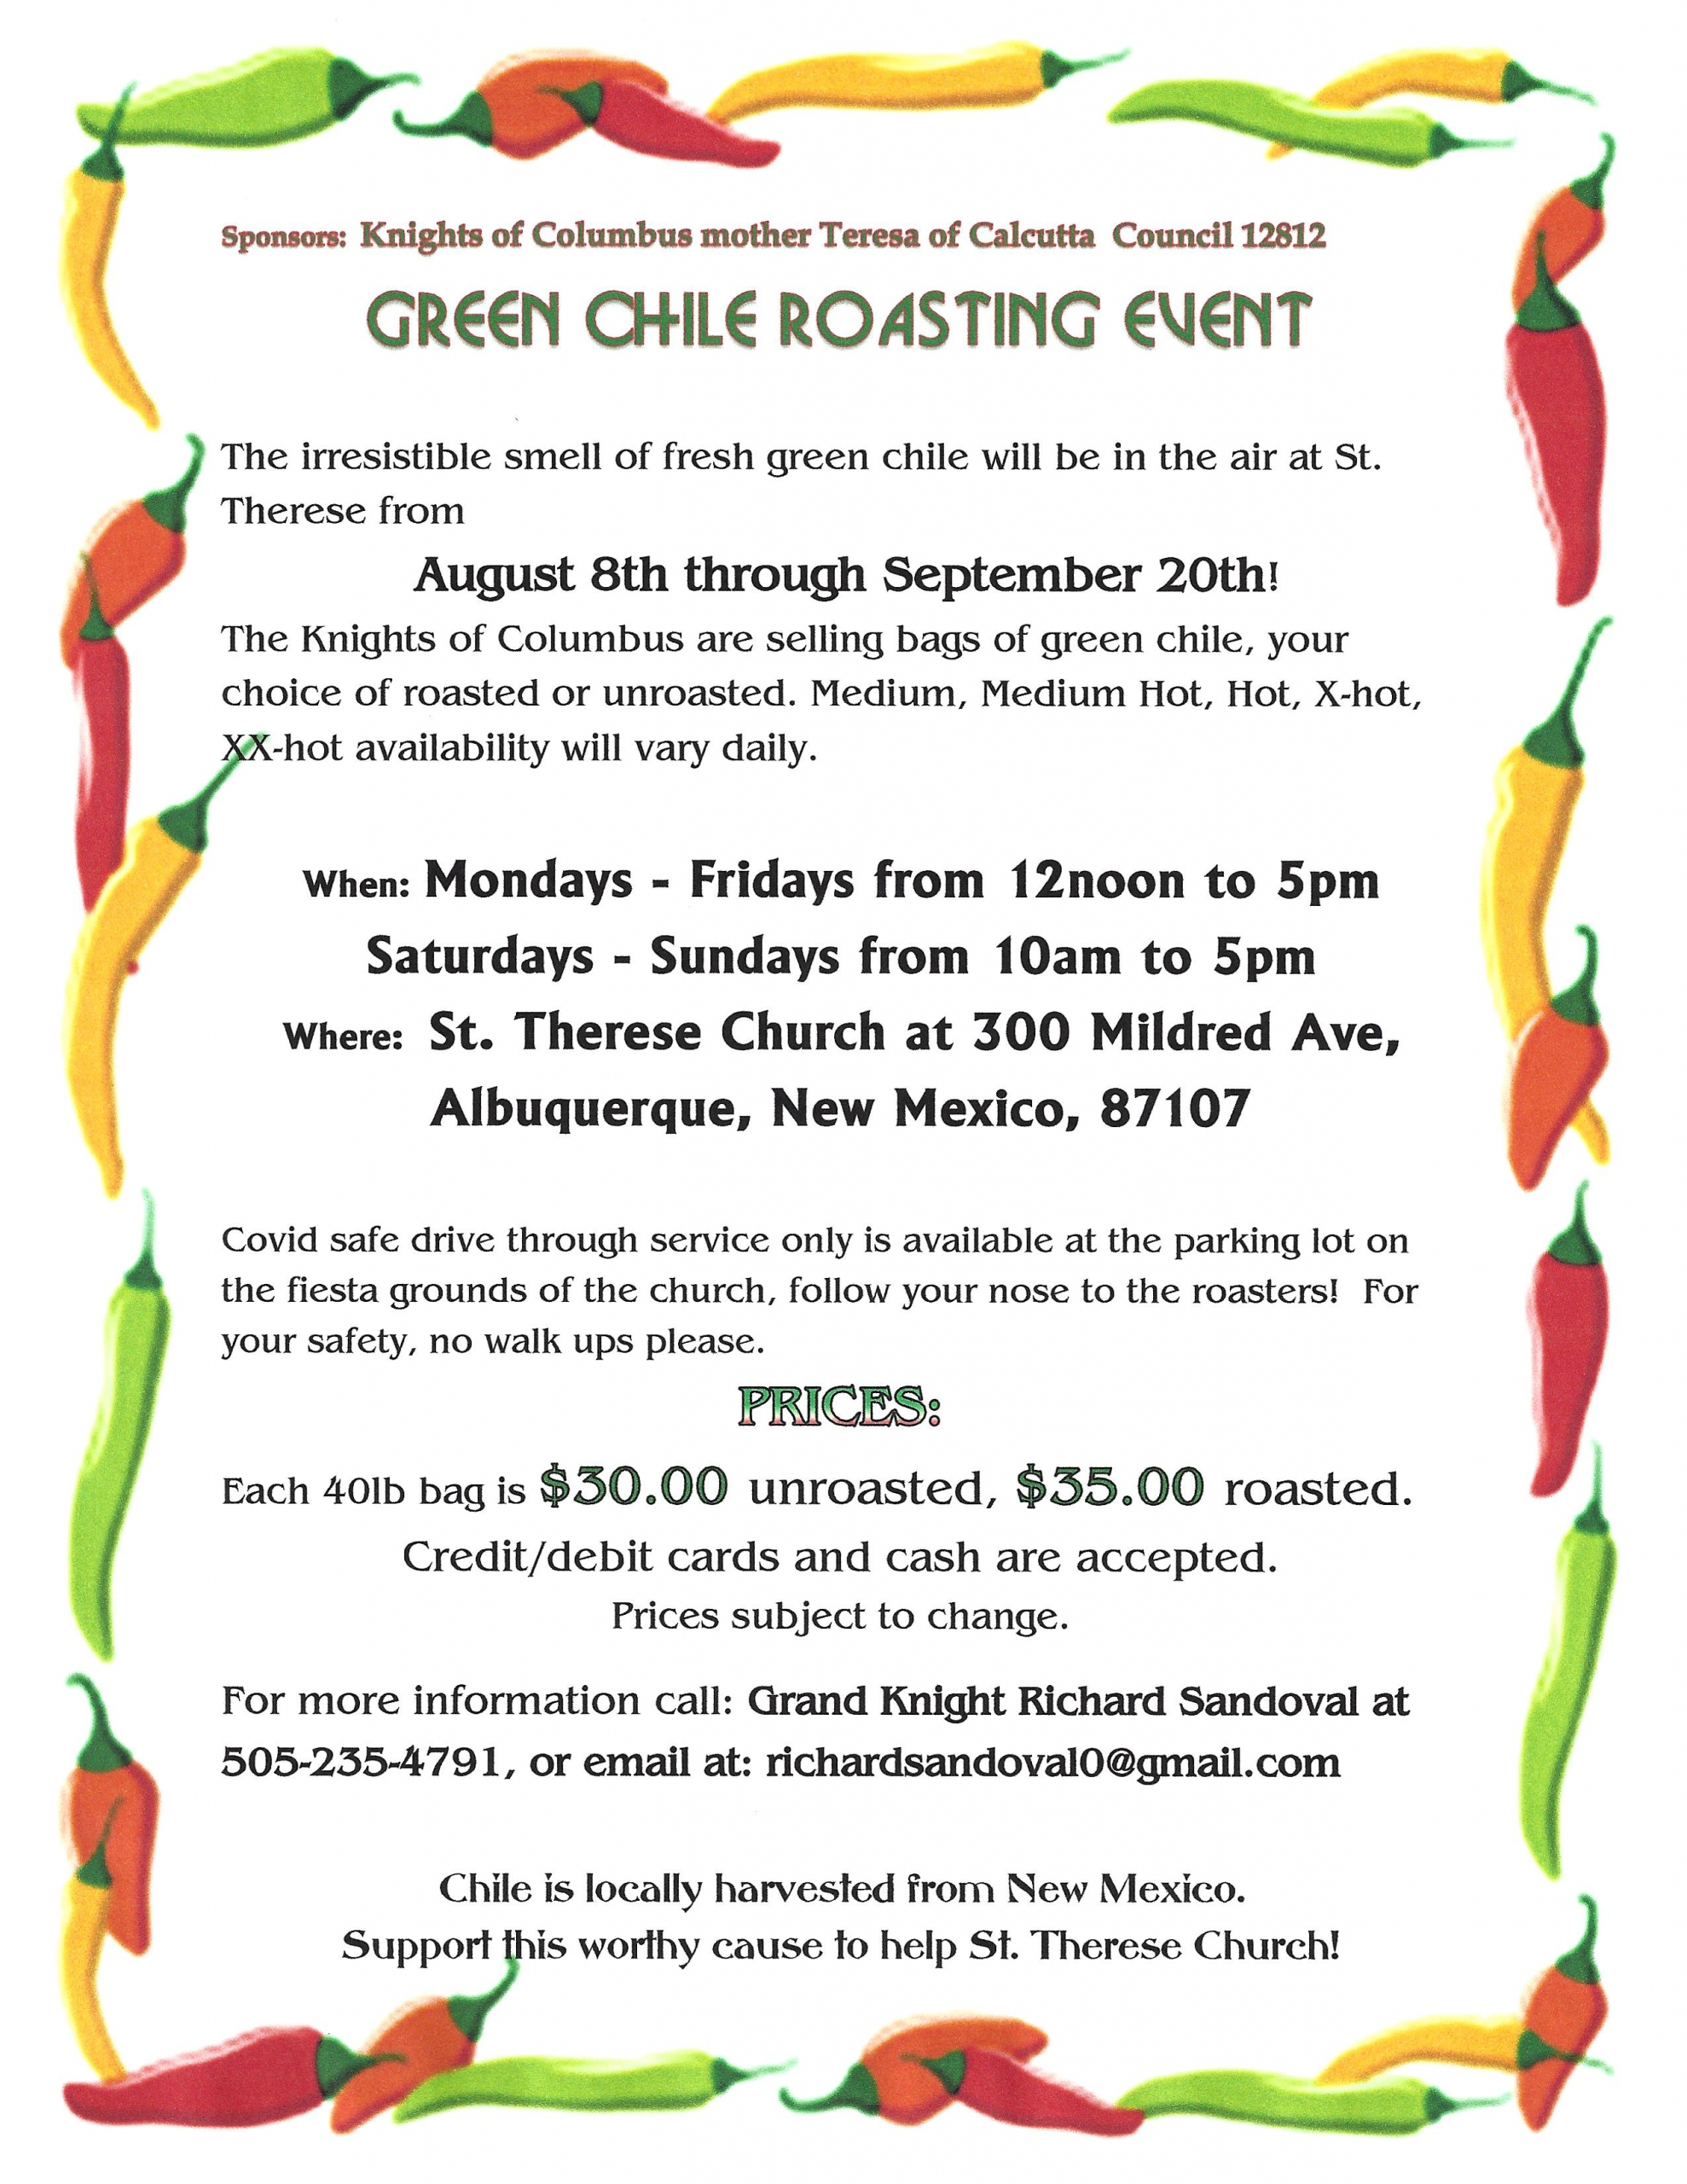 Green Chile Roasting Event August 8th through September 20th